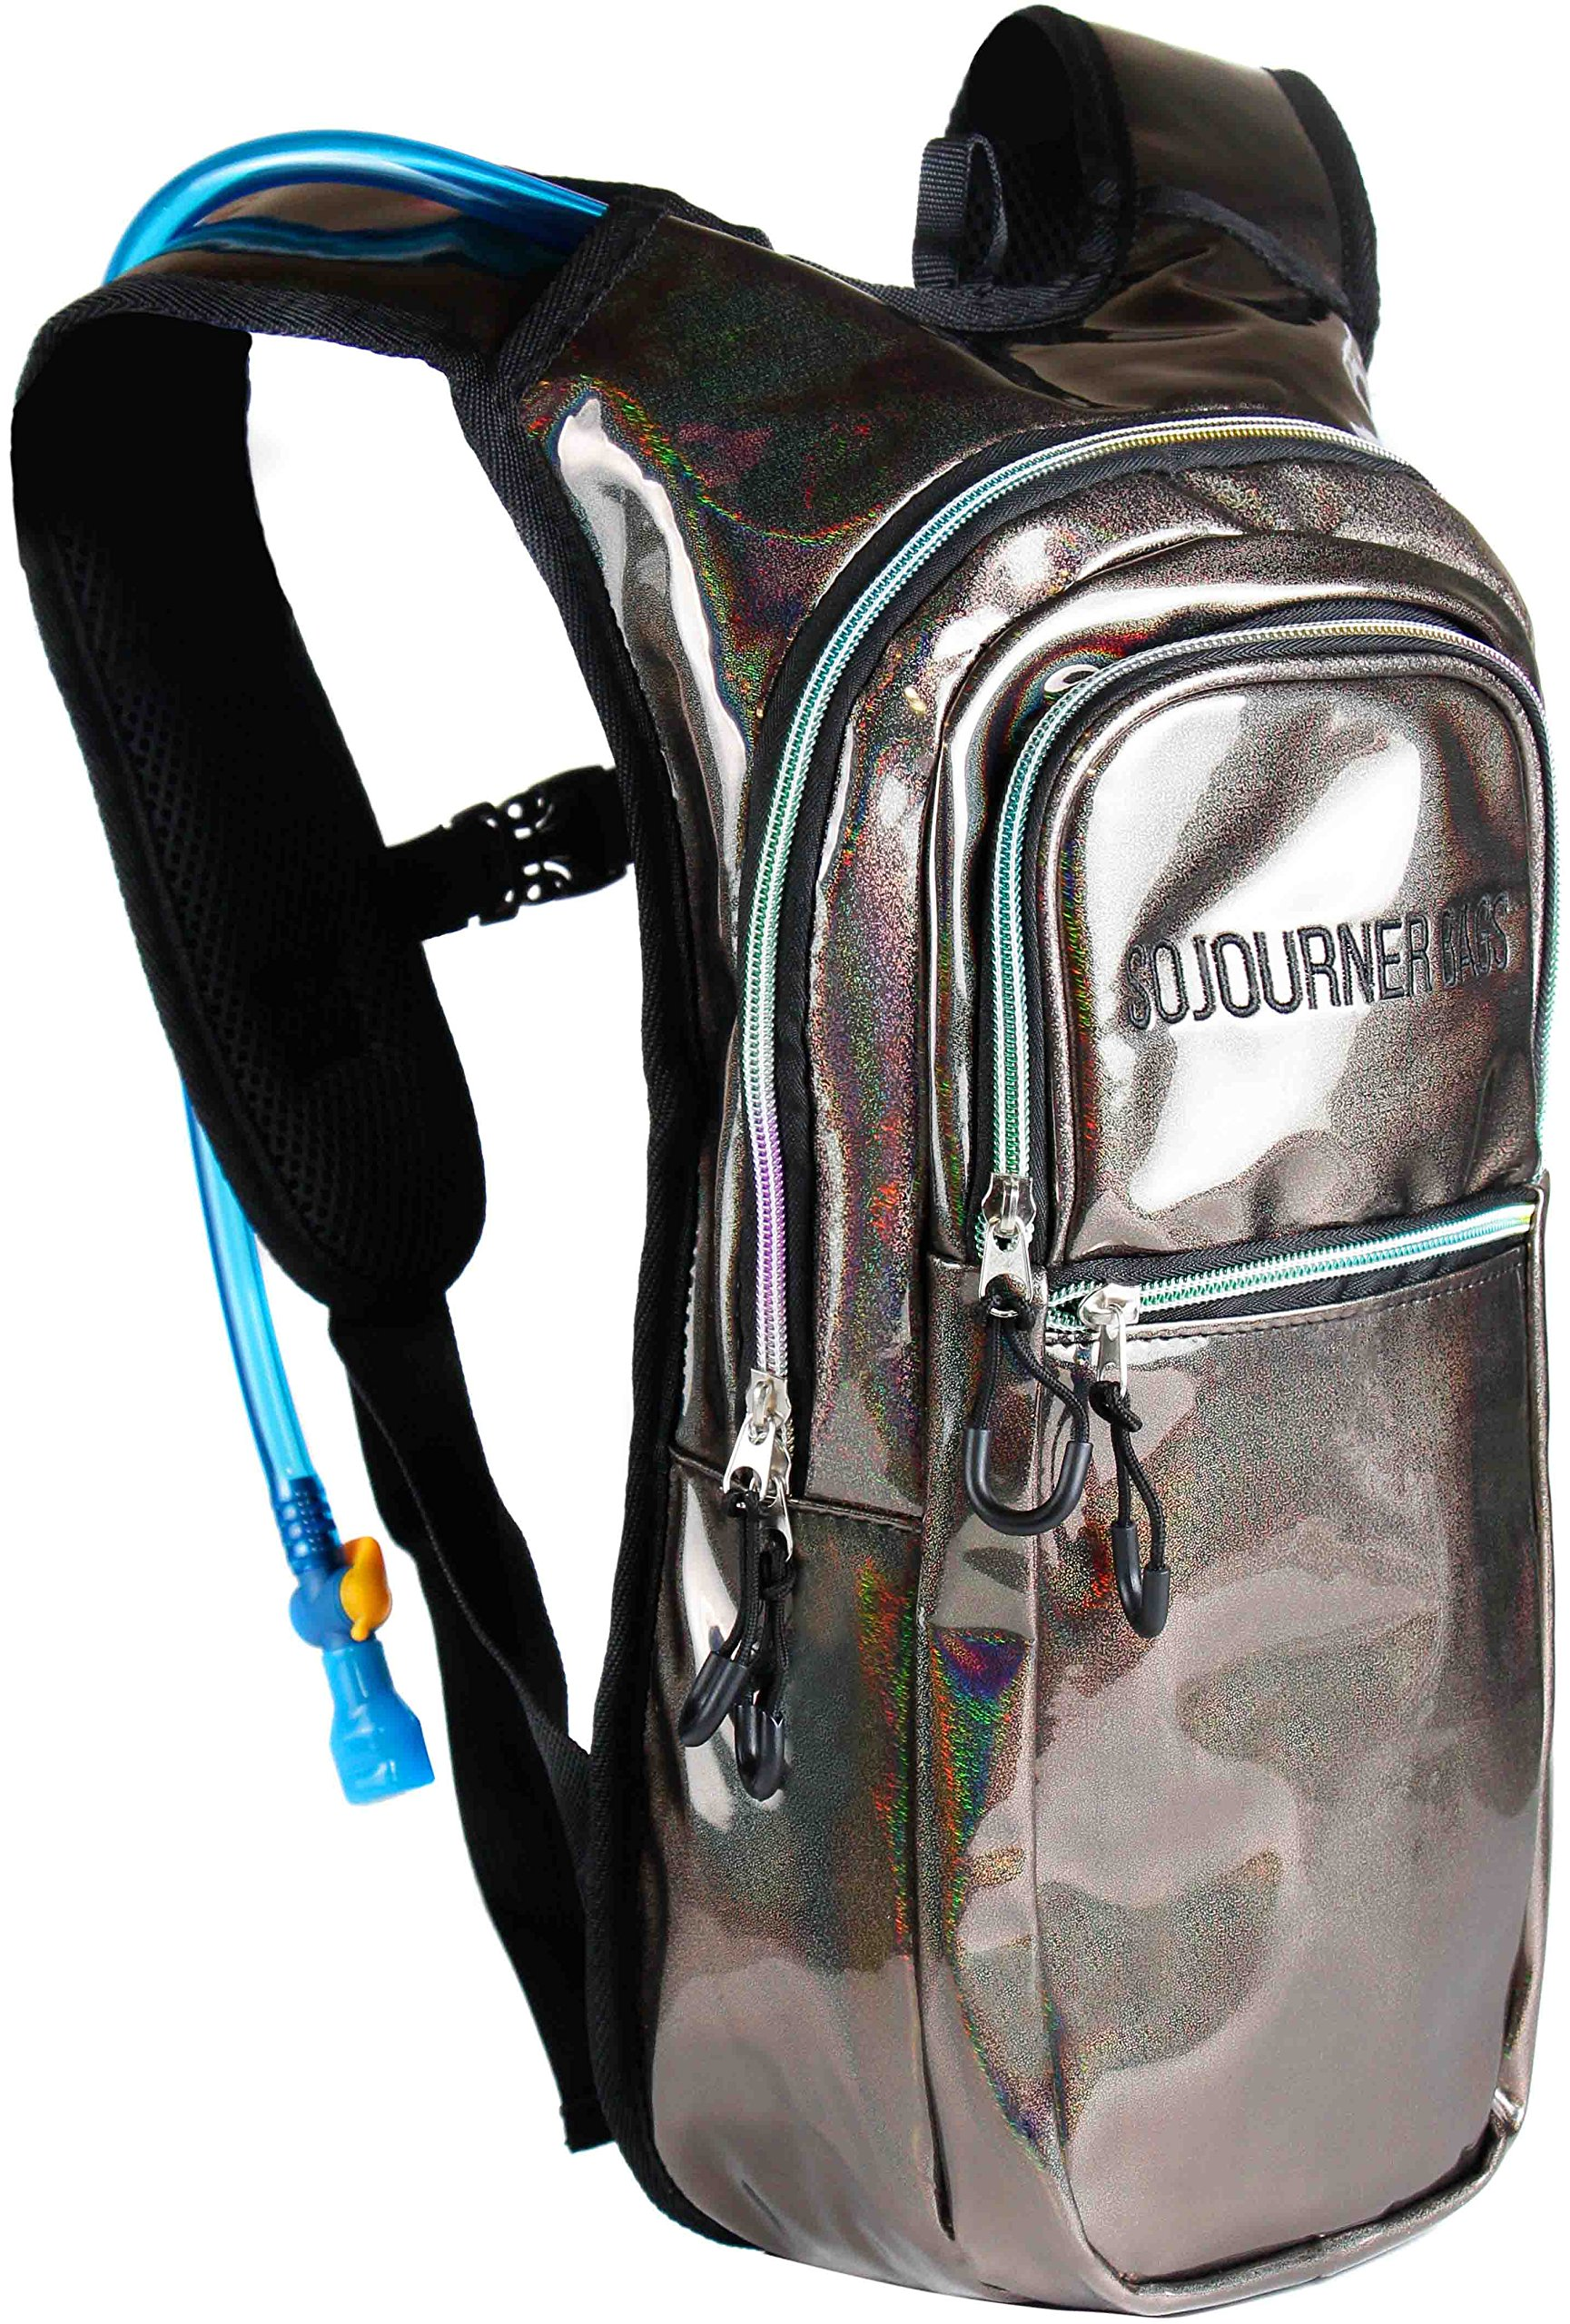 Sojourner Rave Hydration Pack Backpack - 2L Water Bladder Included for Festivals, Raves, Hiking, Biking, Climbing, Running and More (Glitter - Copper)